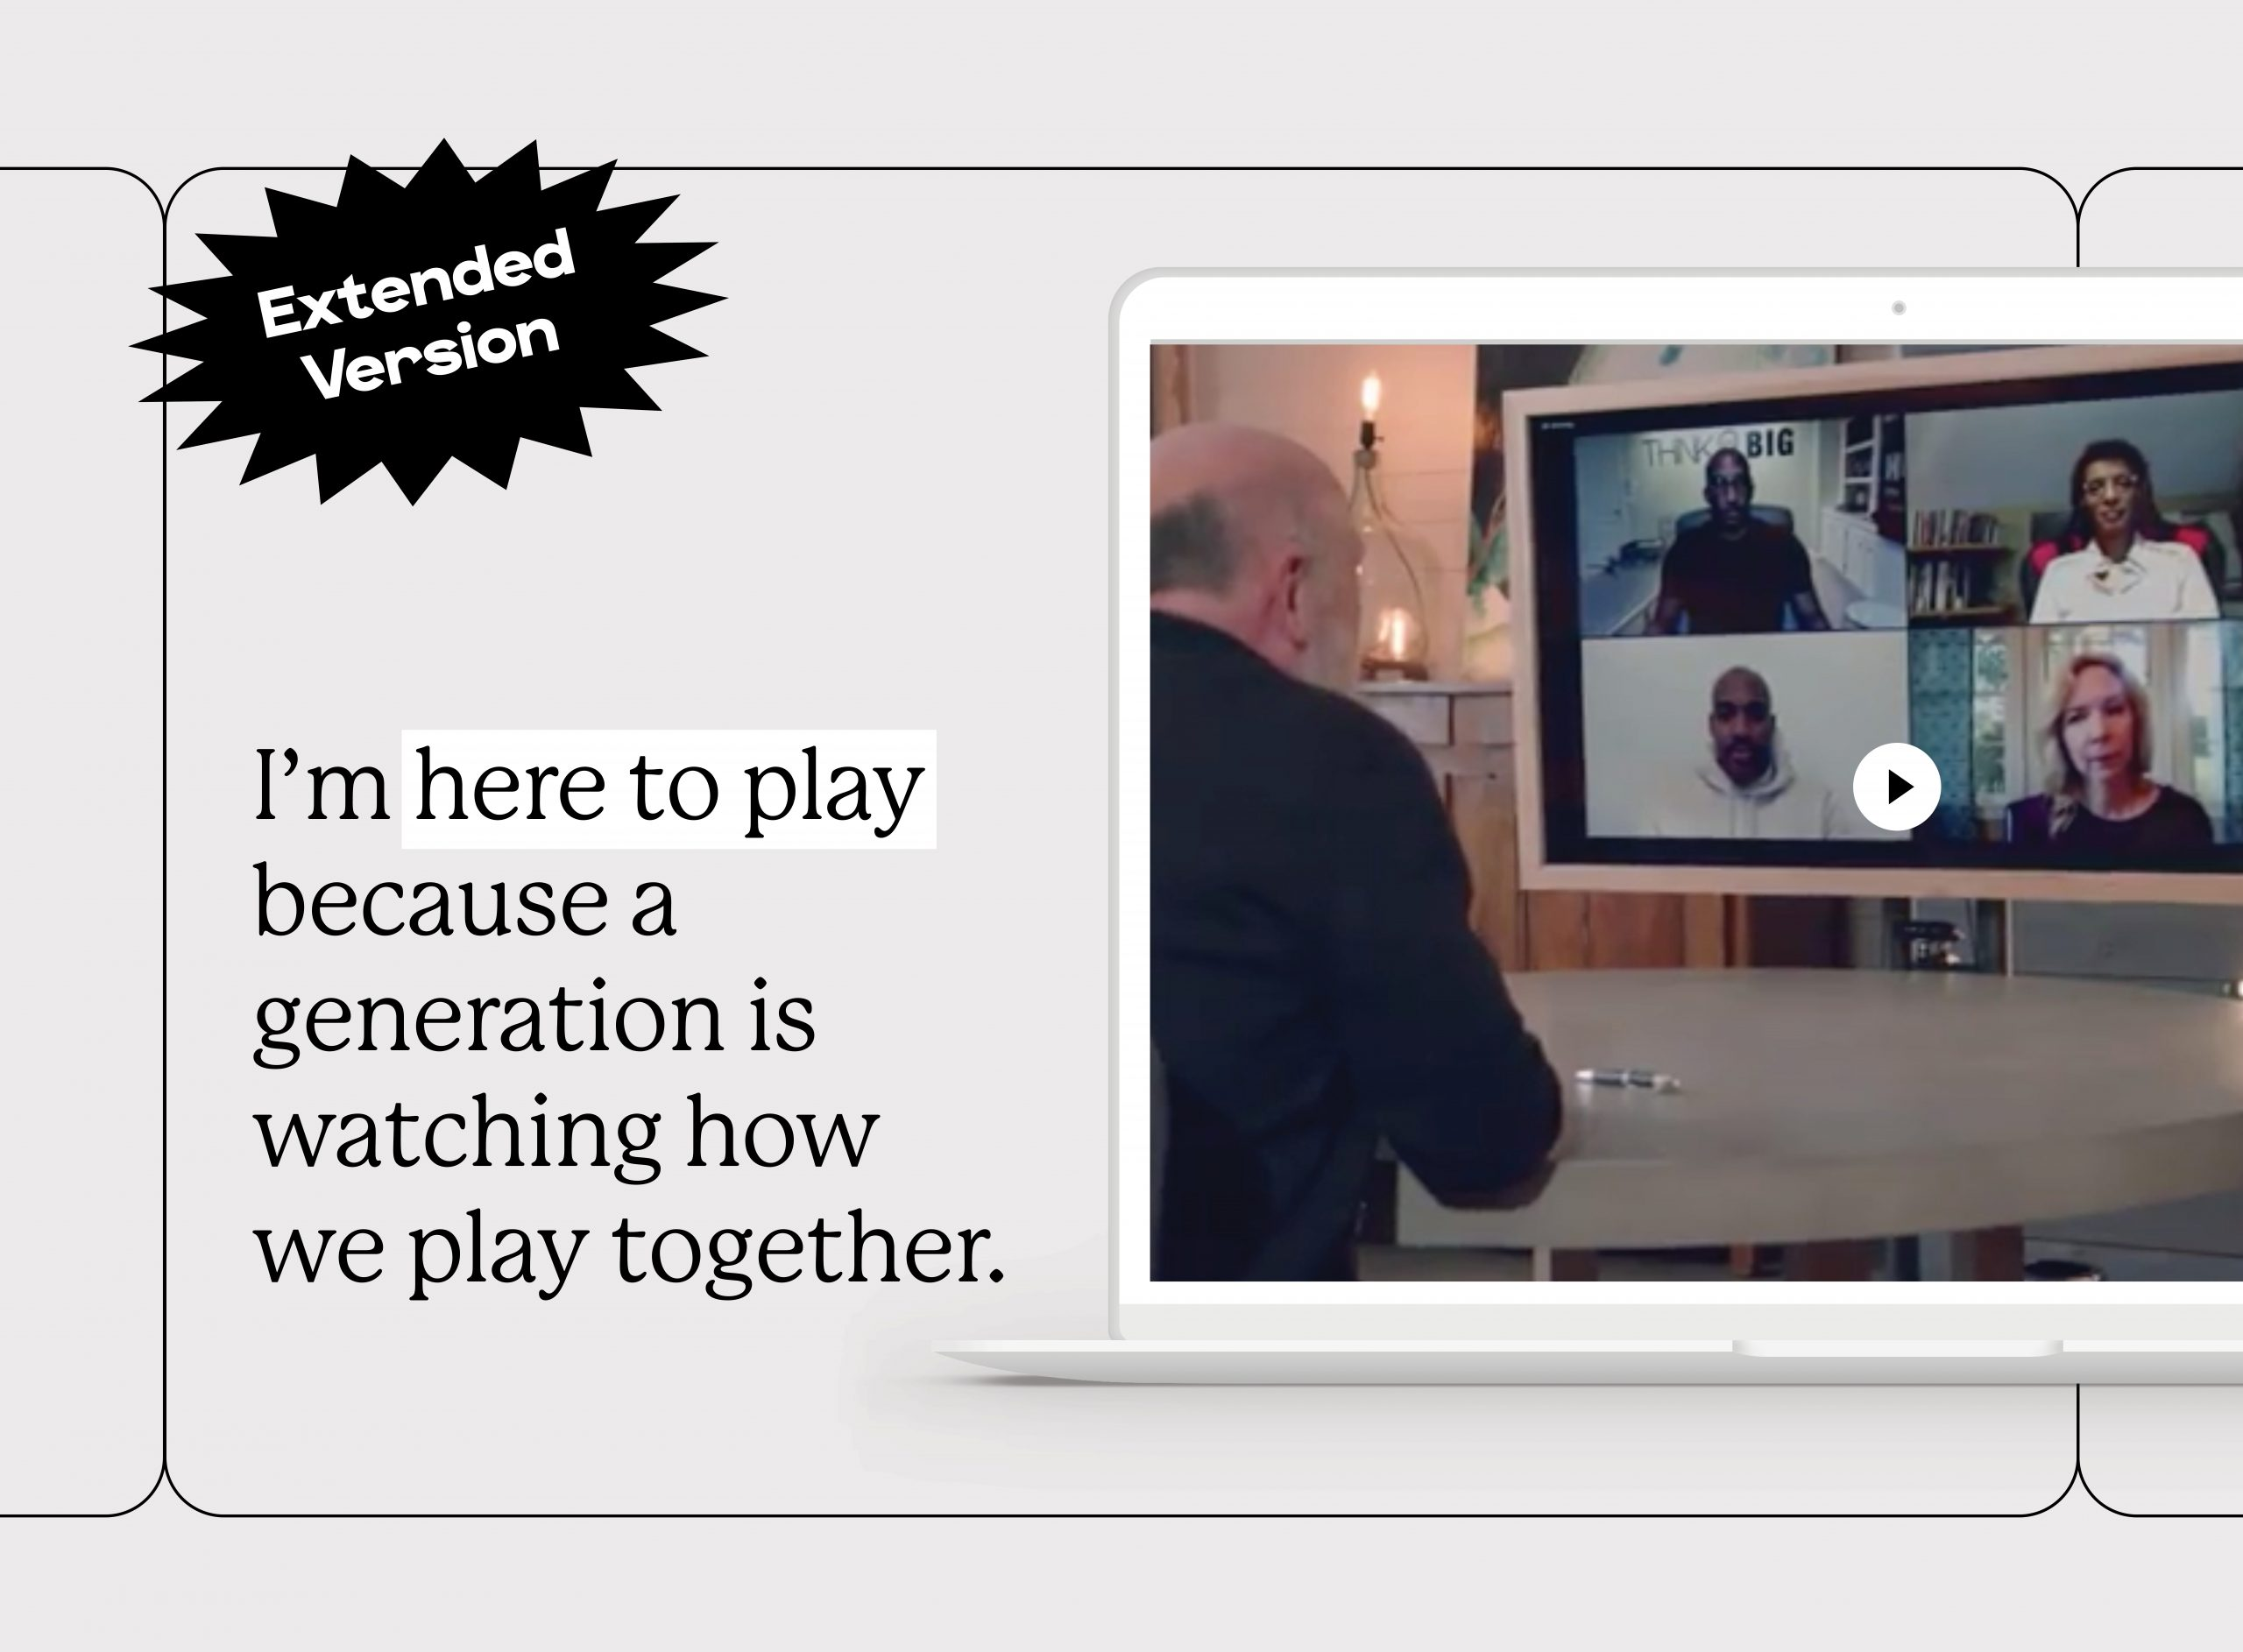 I'm Here to Play Because a Generation is Watching How We Play Together: Video (Extended Version)